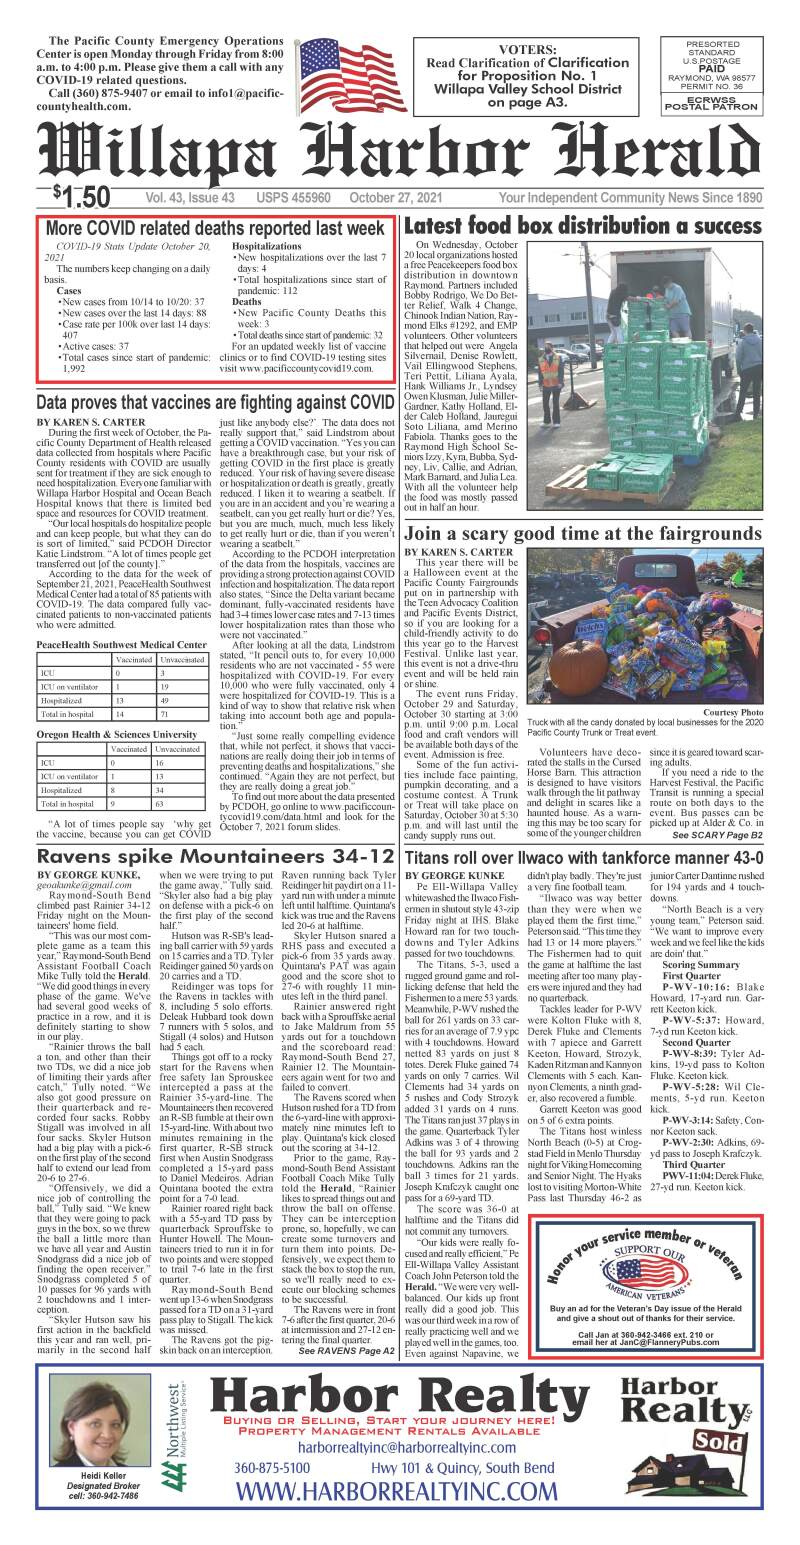 October 27, 2021 Willapa Harbor Herald and Pacific County Press